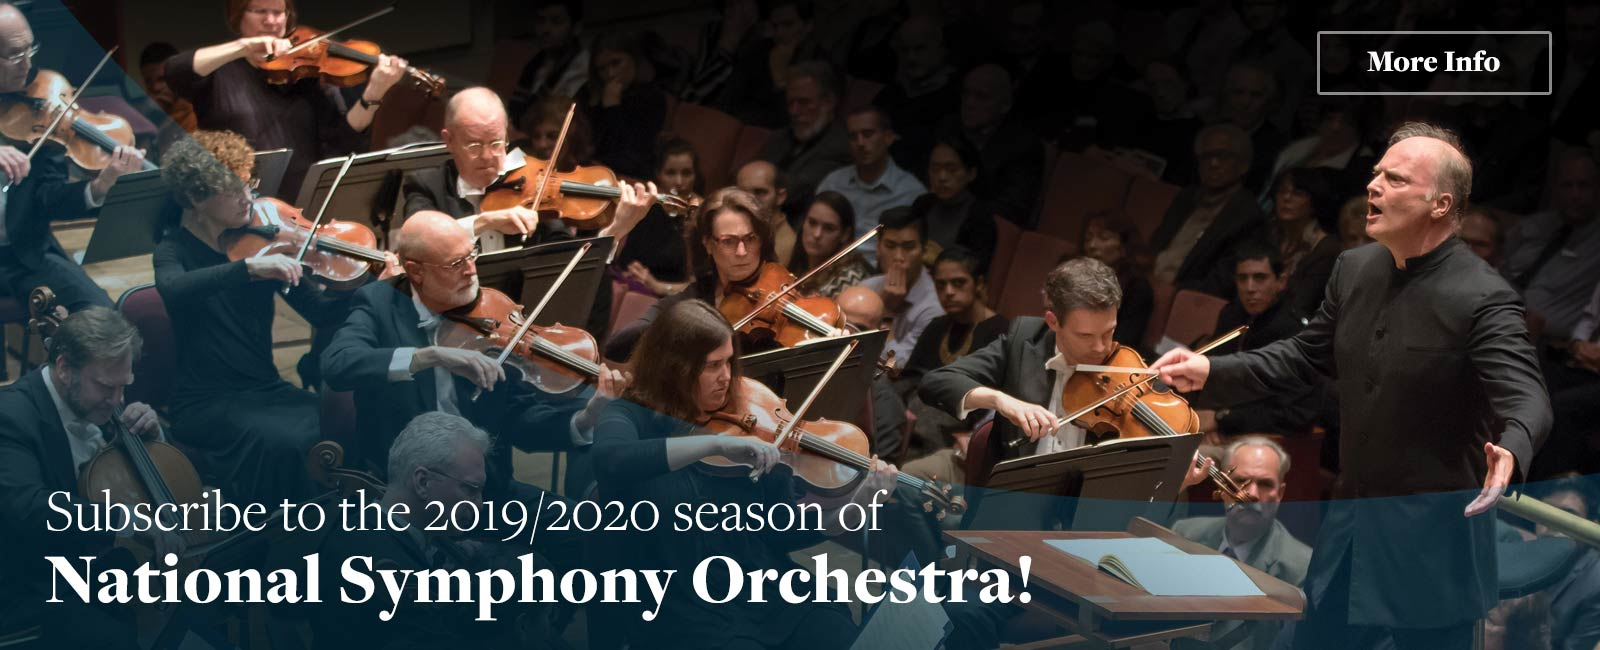 Subscribe to the 2019/2020 season of National Symphony Orchestra